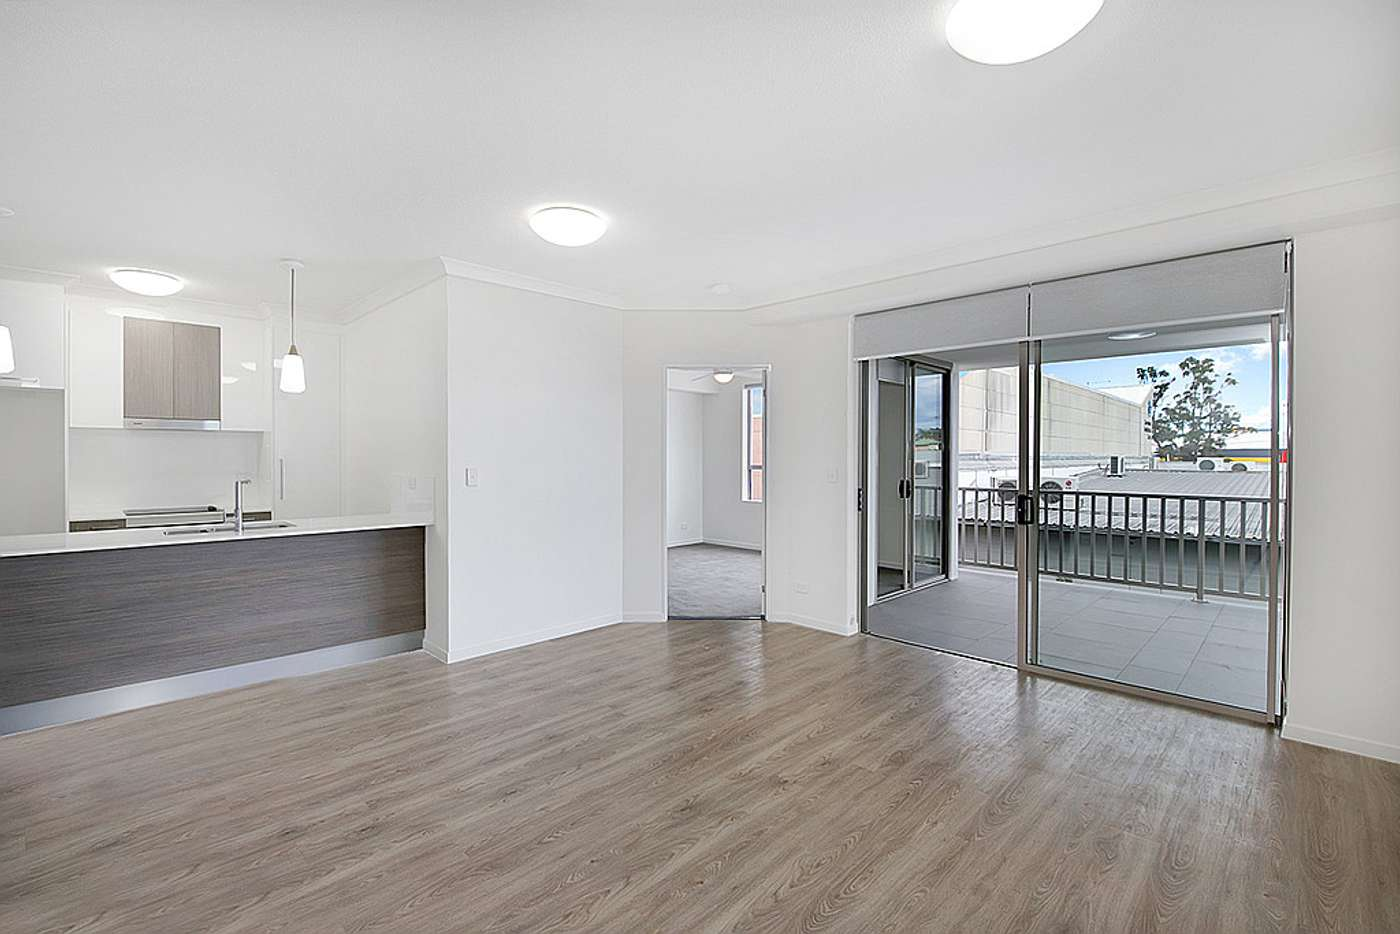 Main view of Homely house listing, 203/19-21 Gordon Street, Greenslopes QLD 4120